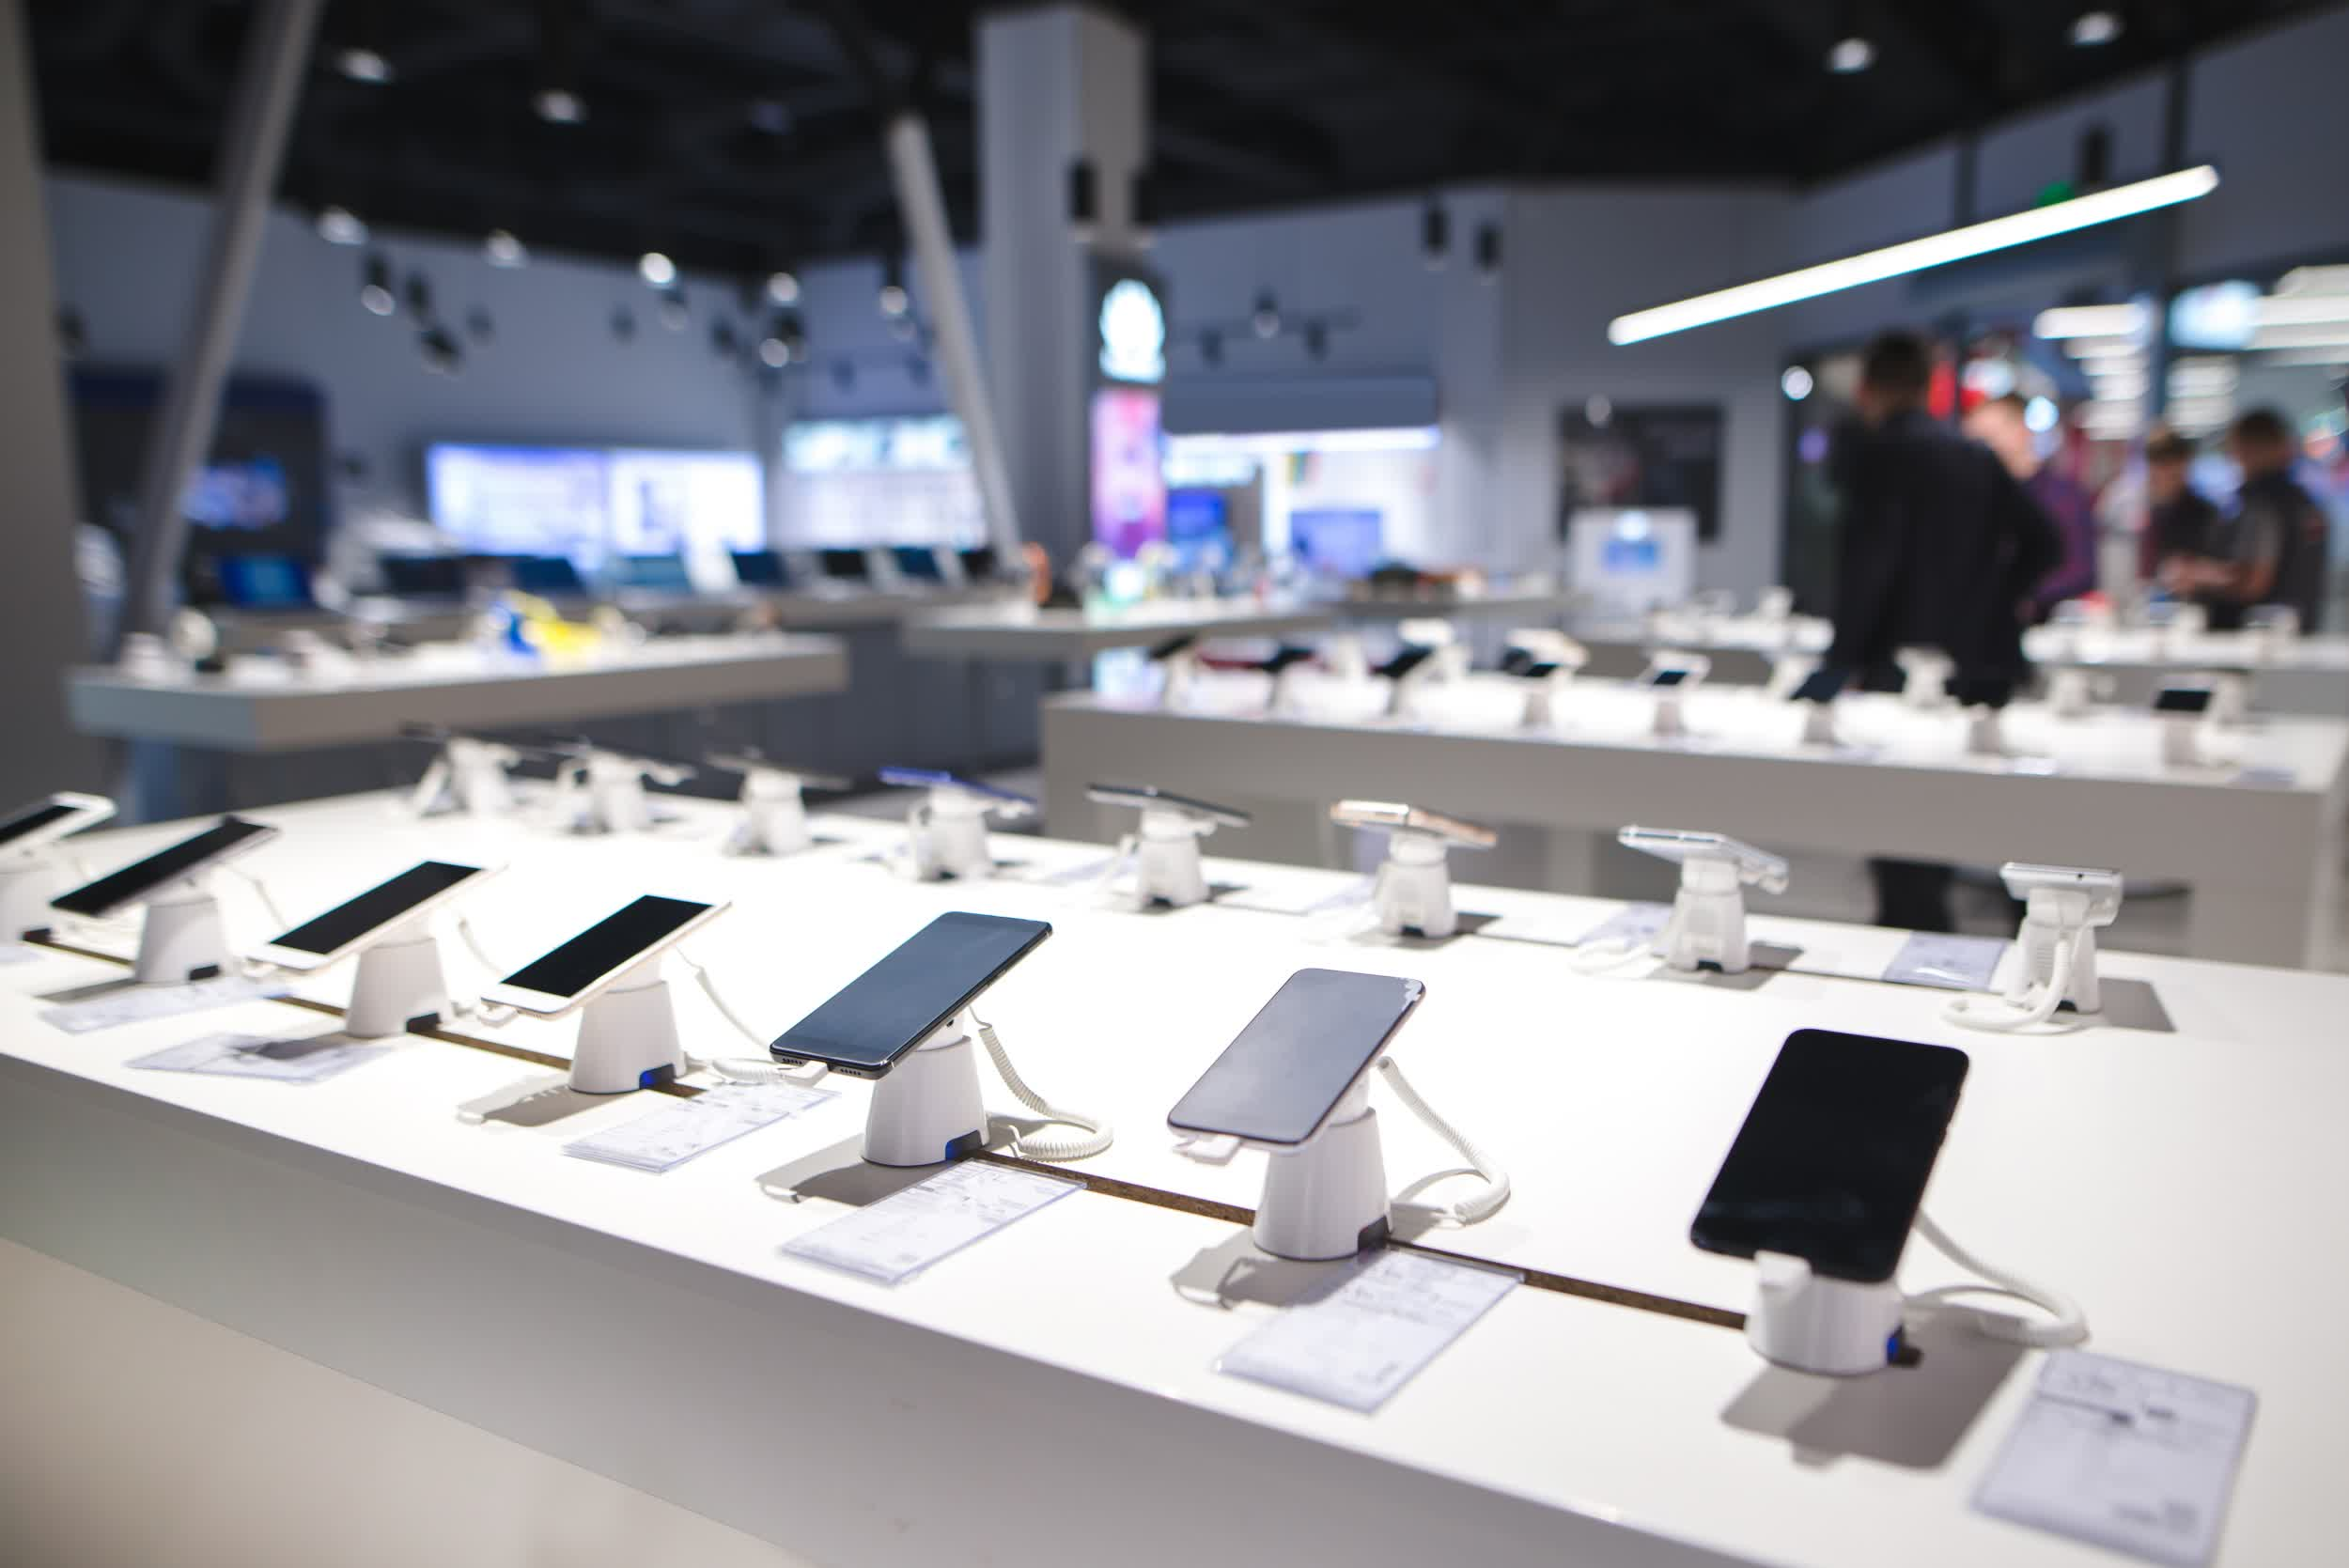 Smartphone sales are returning to normal as we enter the post-pandemic era